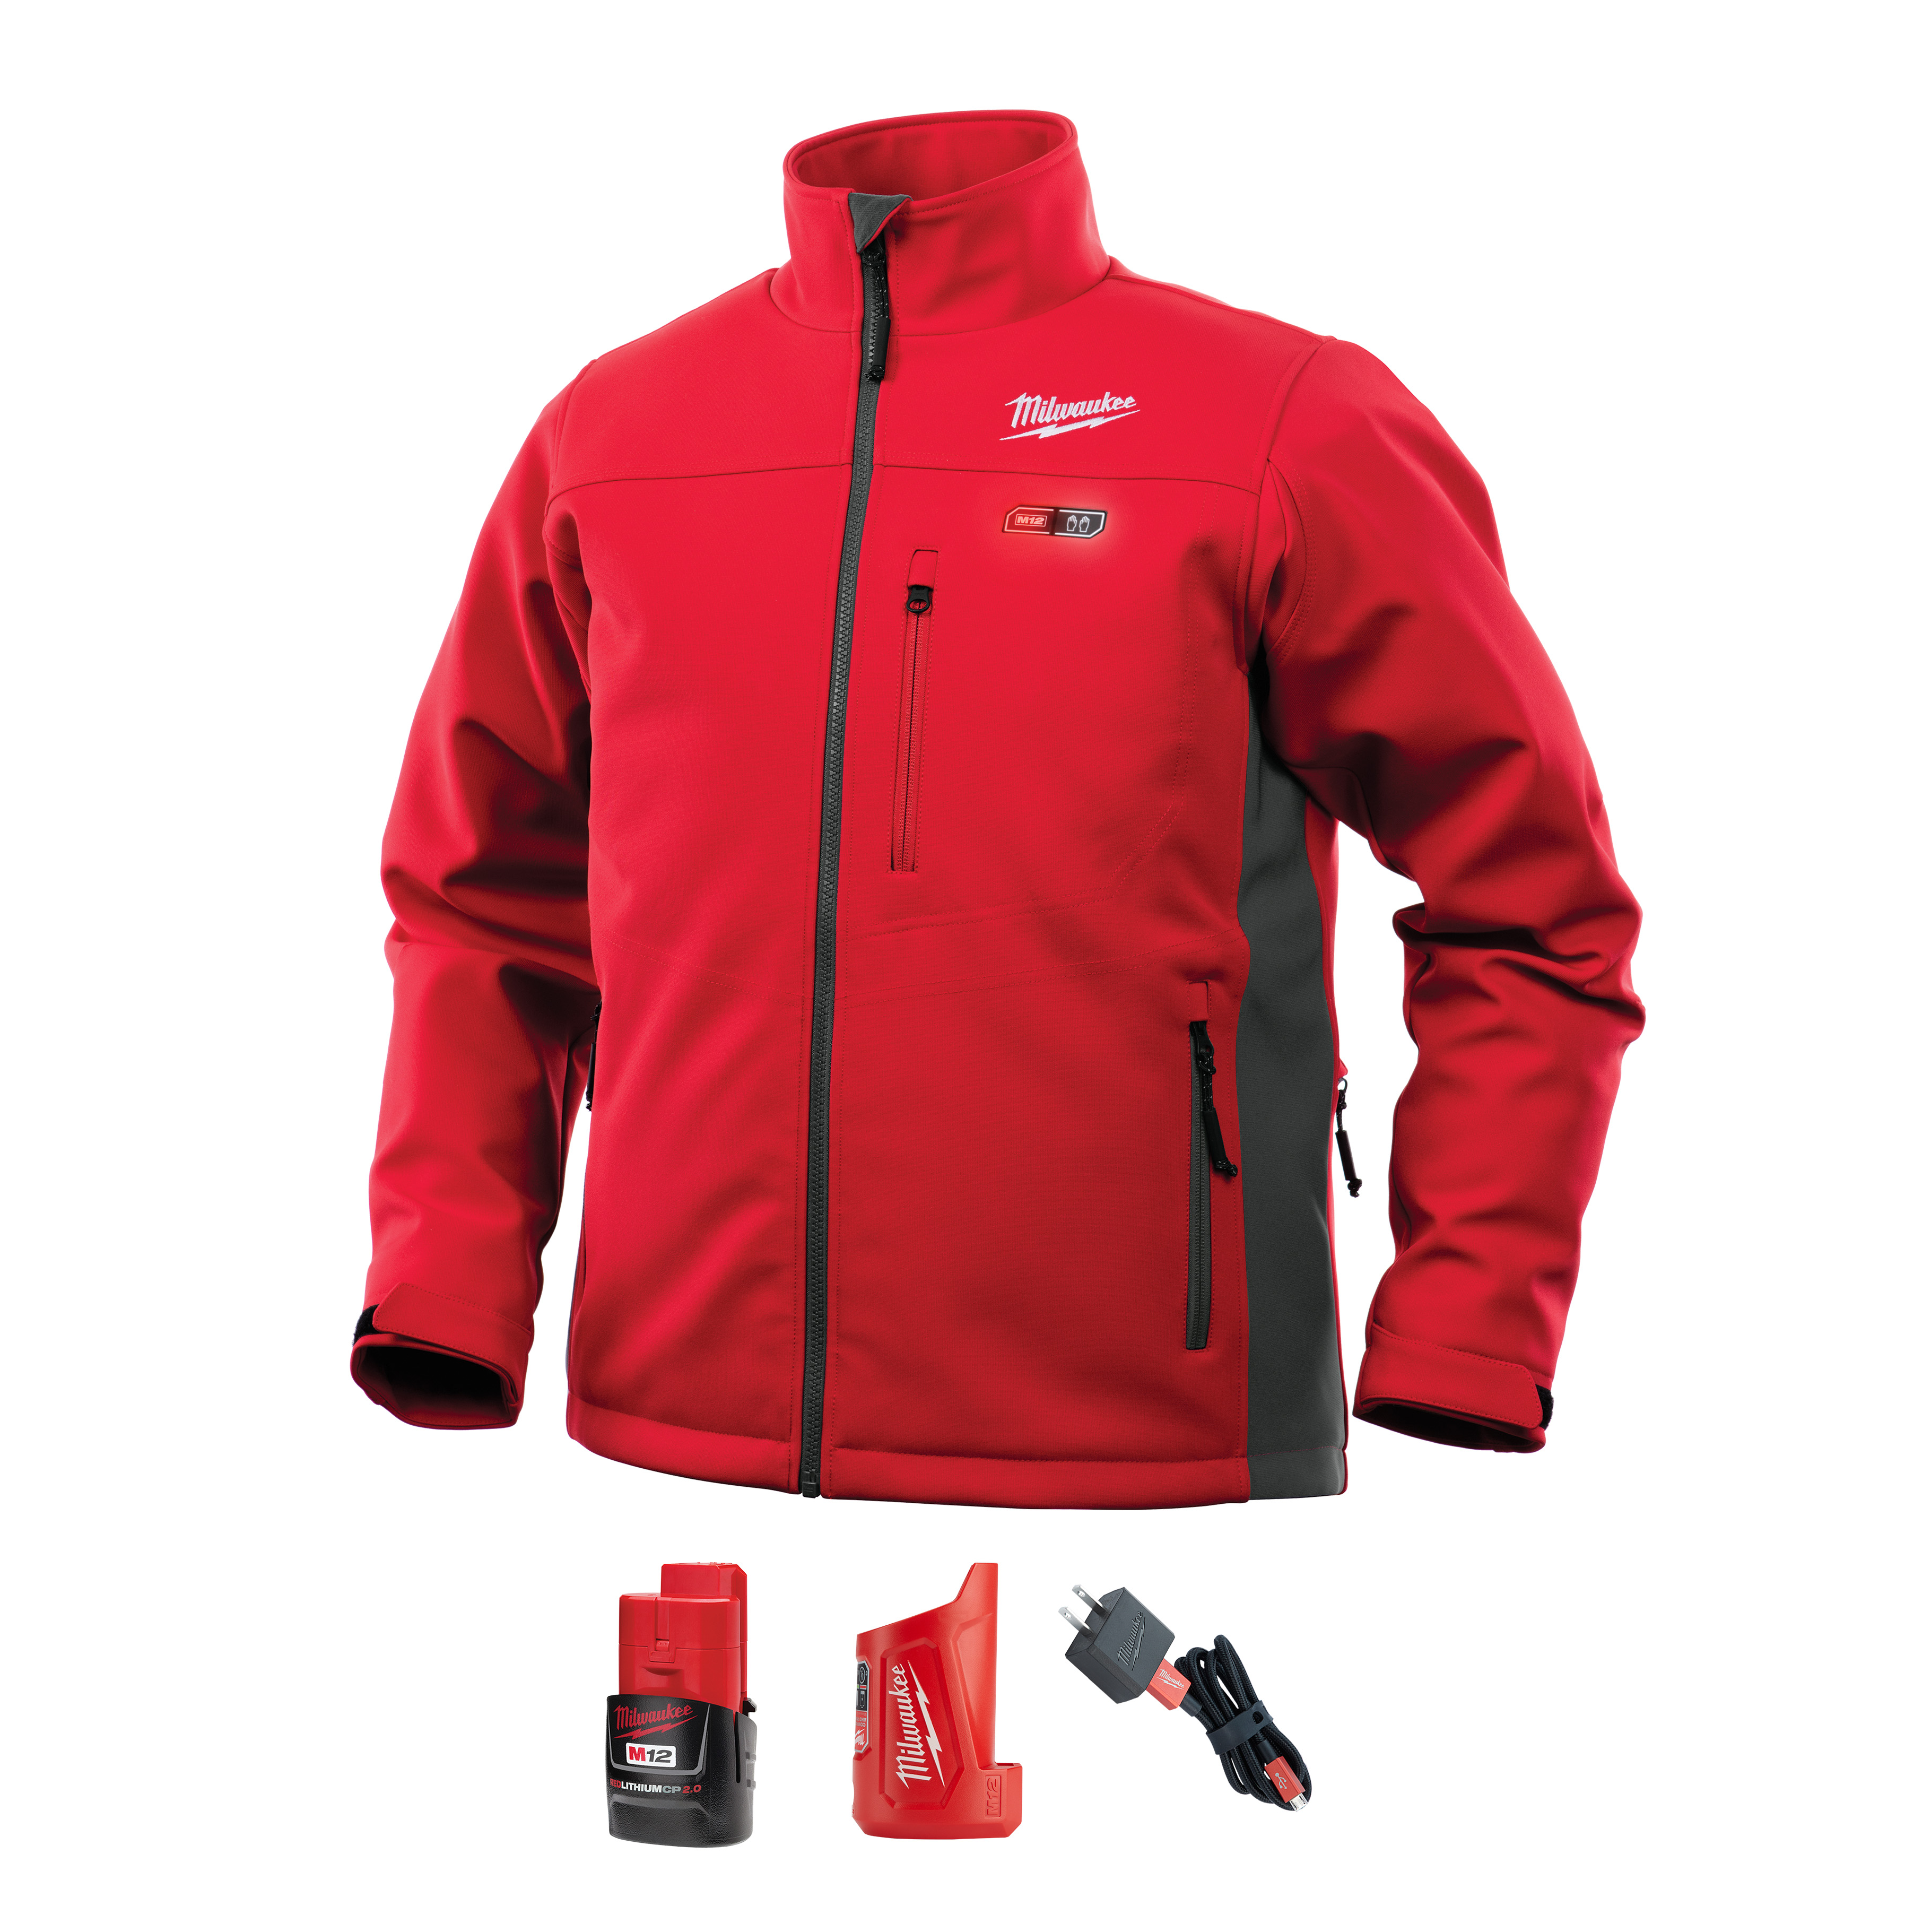 Milwaukee® 202R-20XL Insulated Heated Jacket, XL, Red, Polyester/Brushed Tricot Lining, 44 to 46 in Chest, Resists: Water and Wind